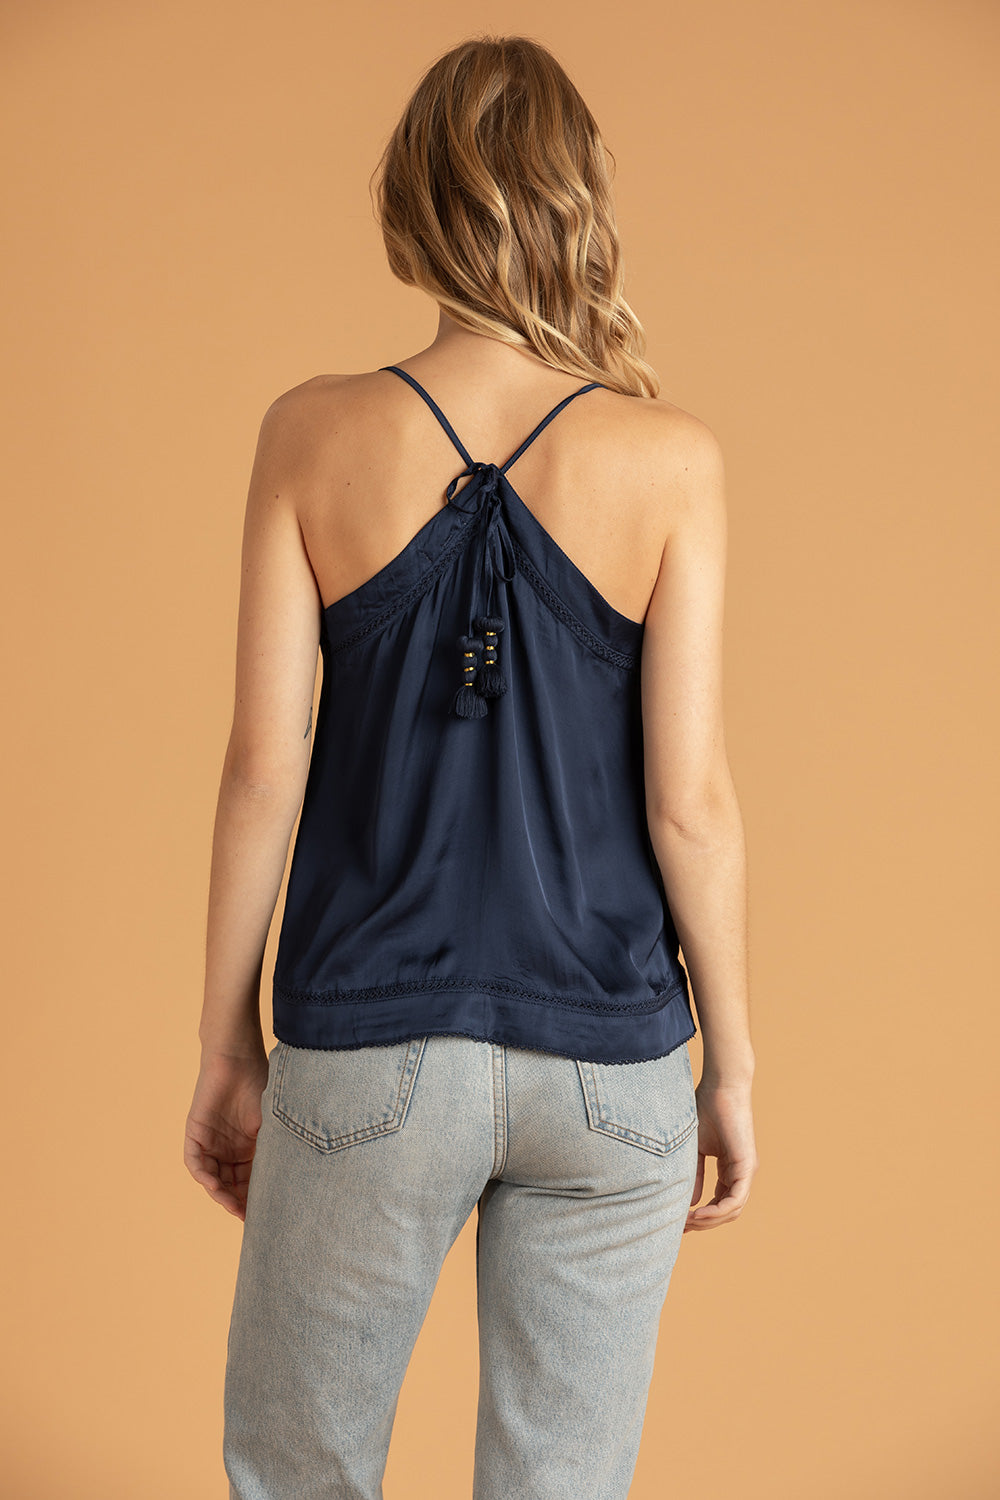 Top Fiona Lace Trimmed - Navy